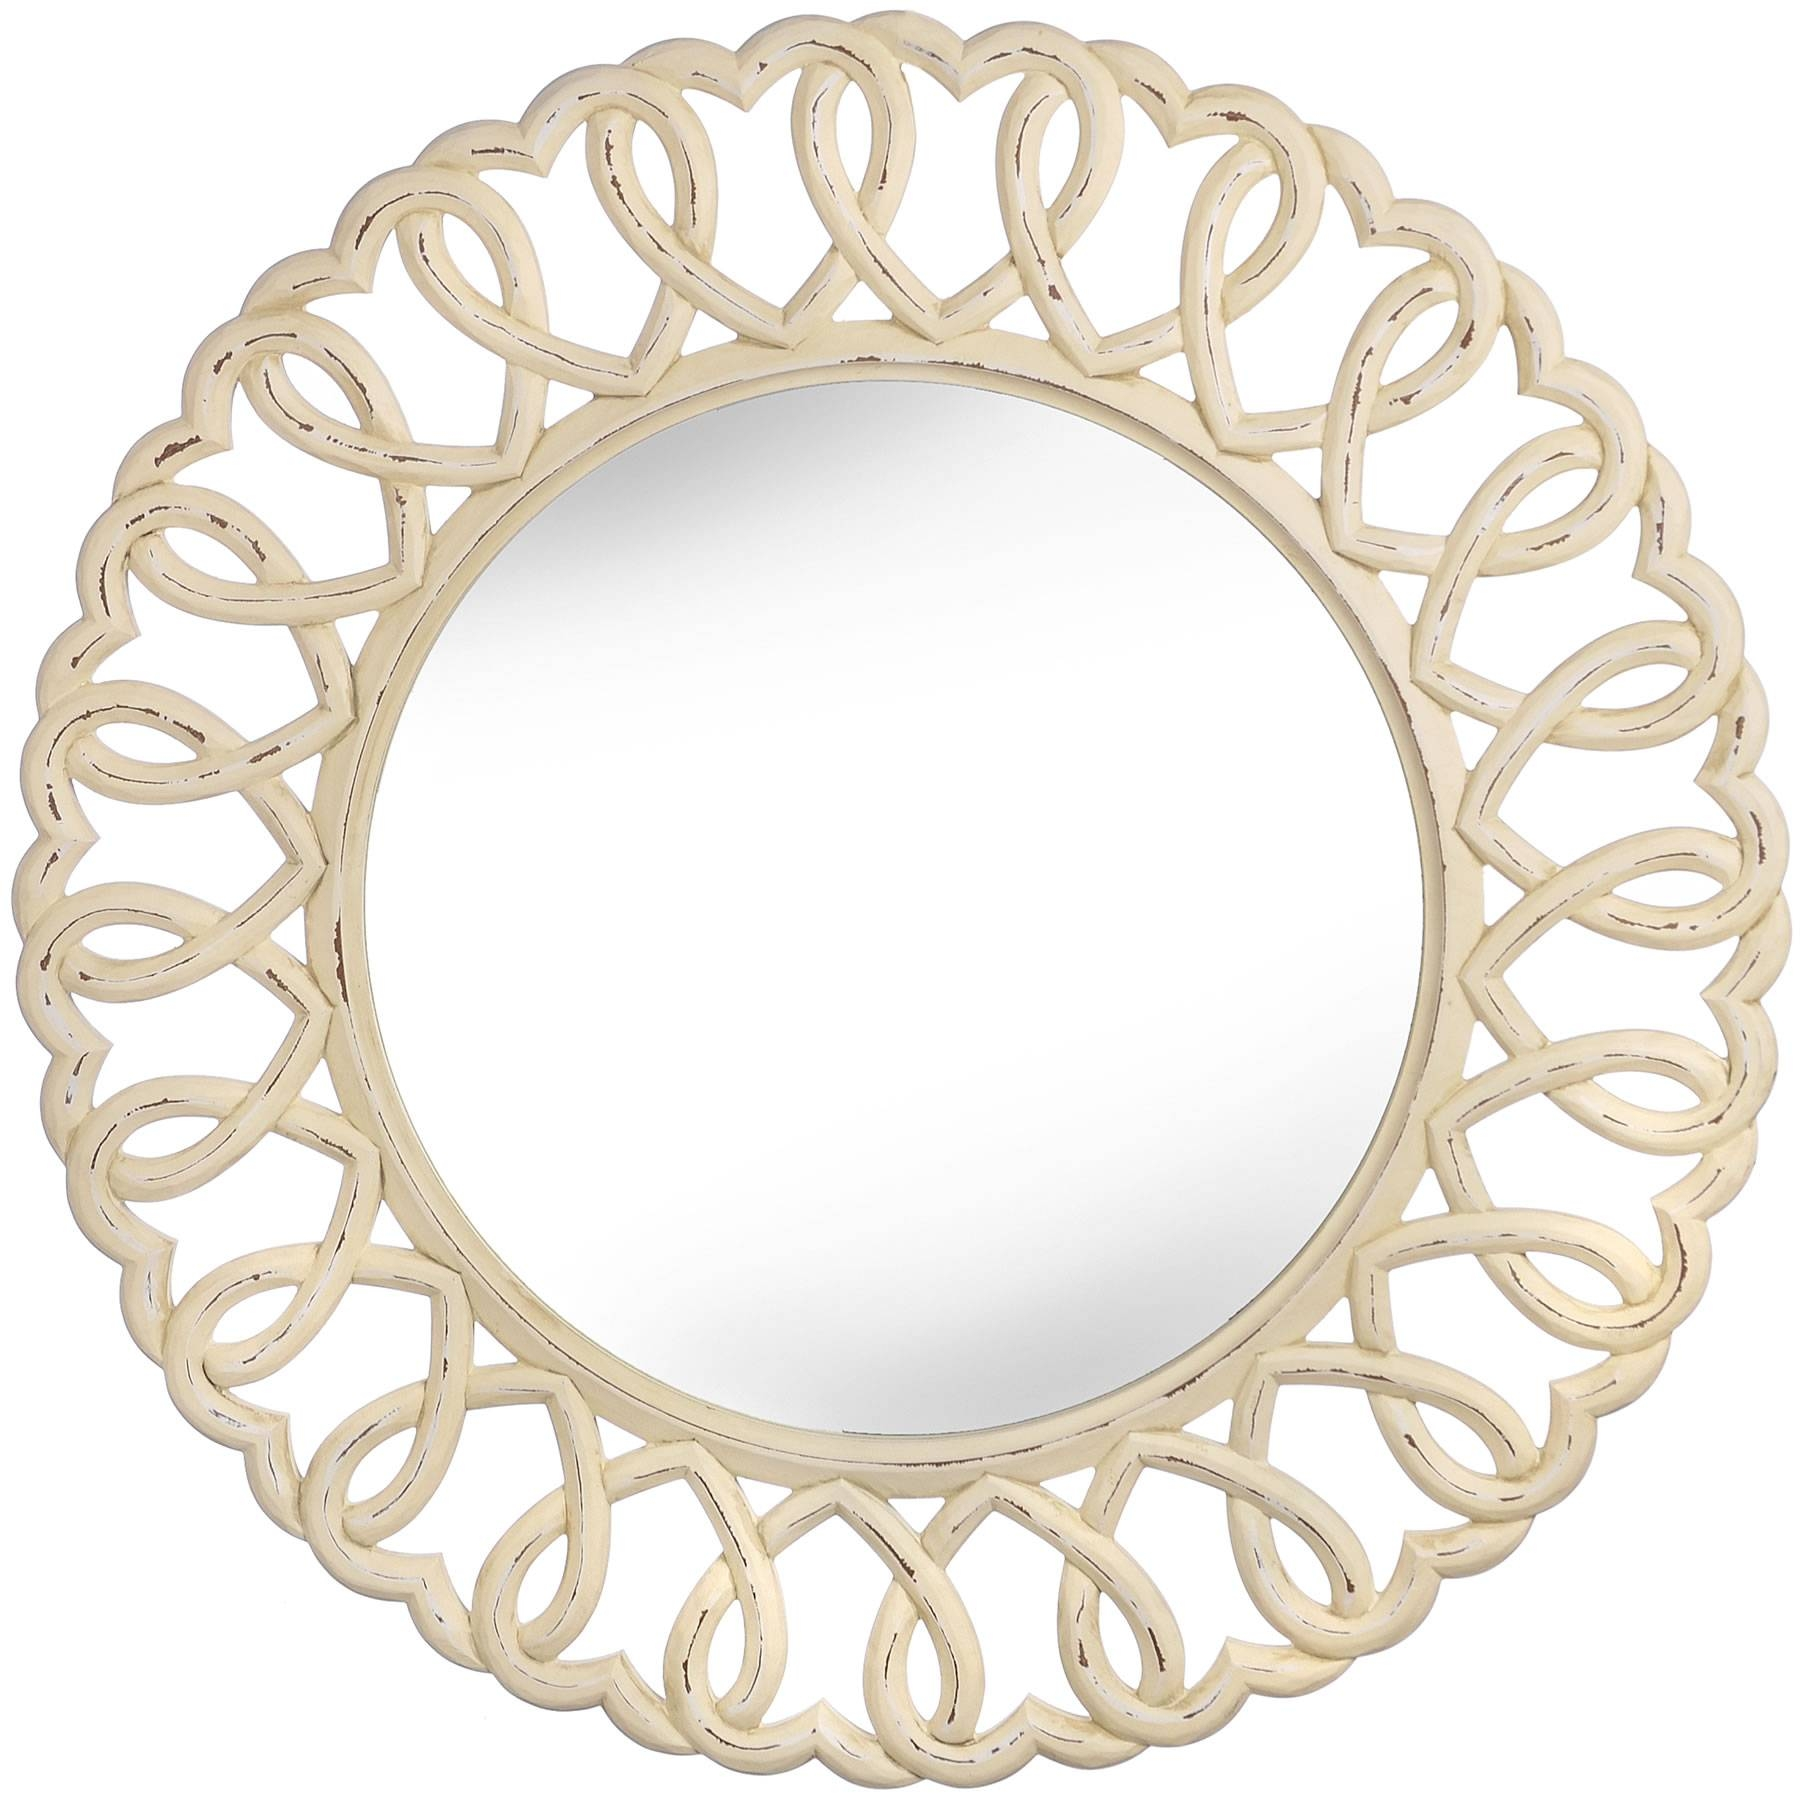 Cheap Shabby Chic Mirrors Uk: The Paper Mulberry: Perfectly Pale inside Cheap Shabby Chic Mirrors (Image 3 of 15)